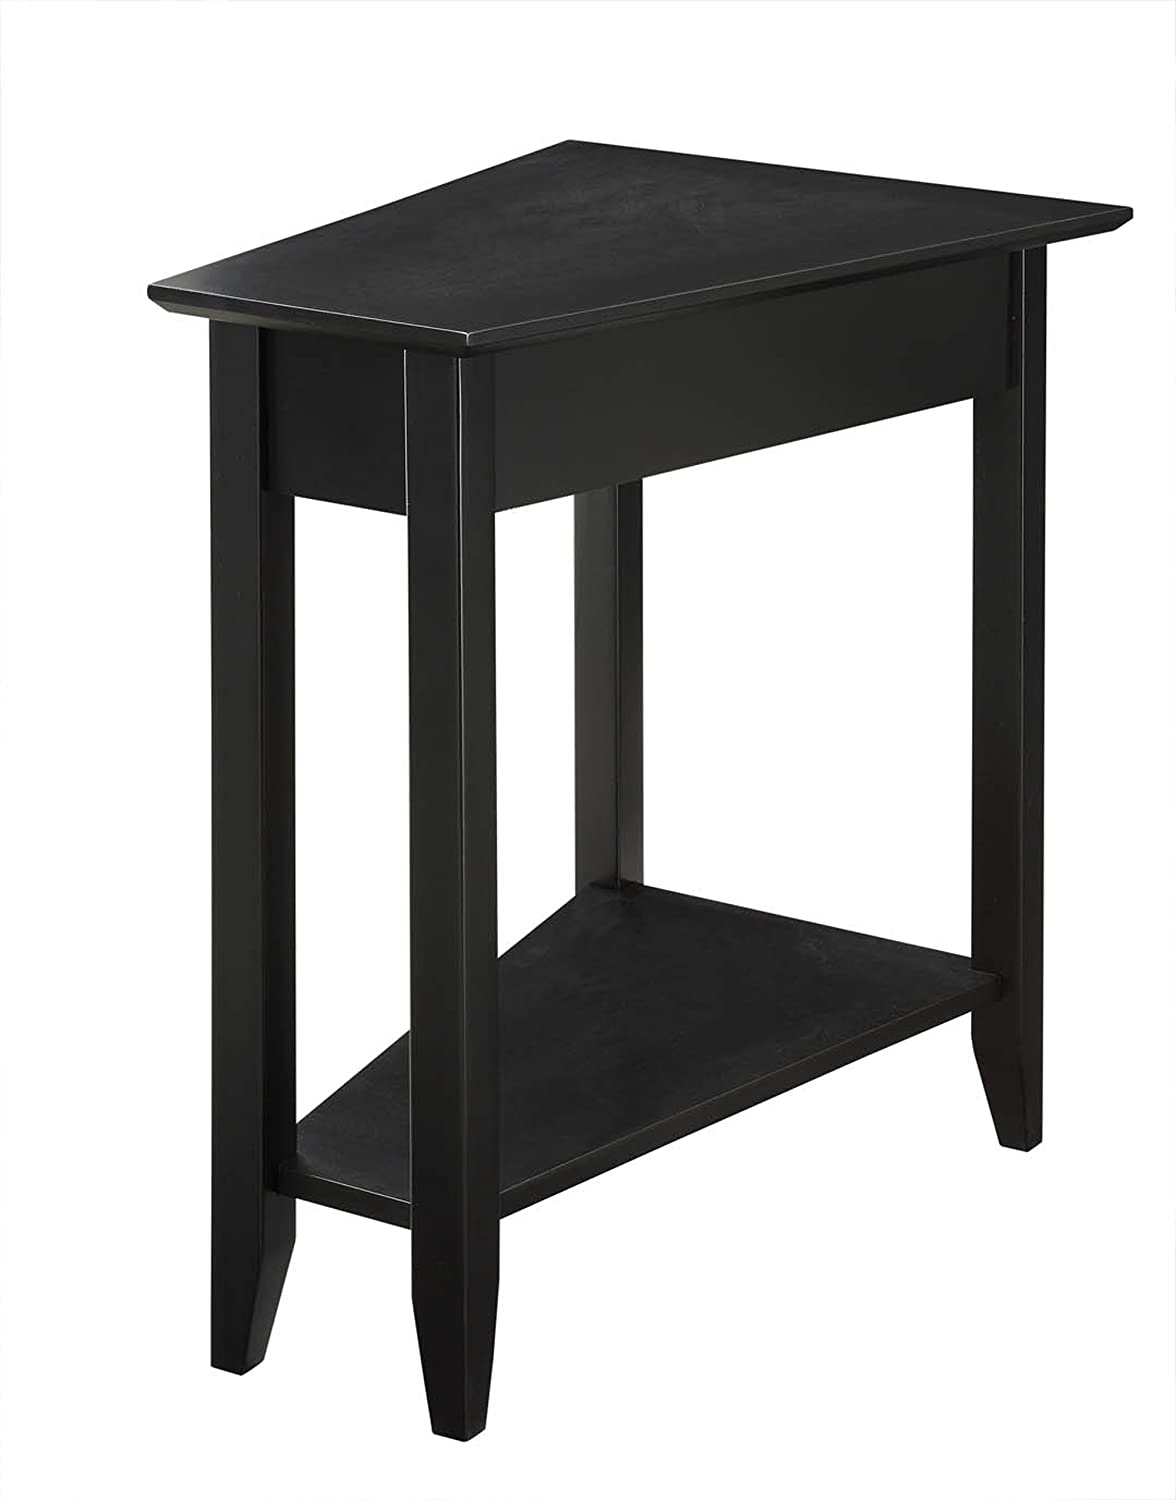 amazoncom convenience concepts american heritage modern wedge end tableblack kitchen  dining. amazoncom convenience concepts american heritage modern wedge